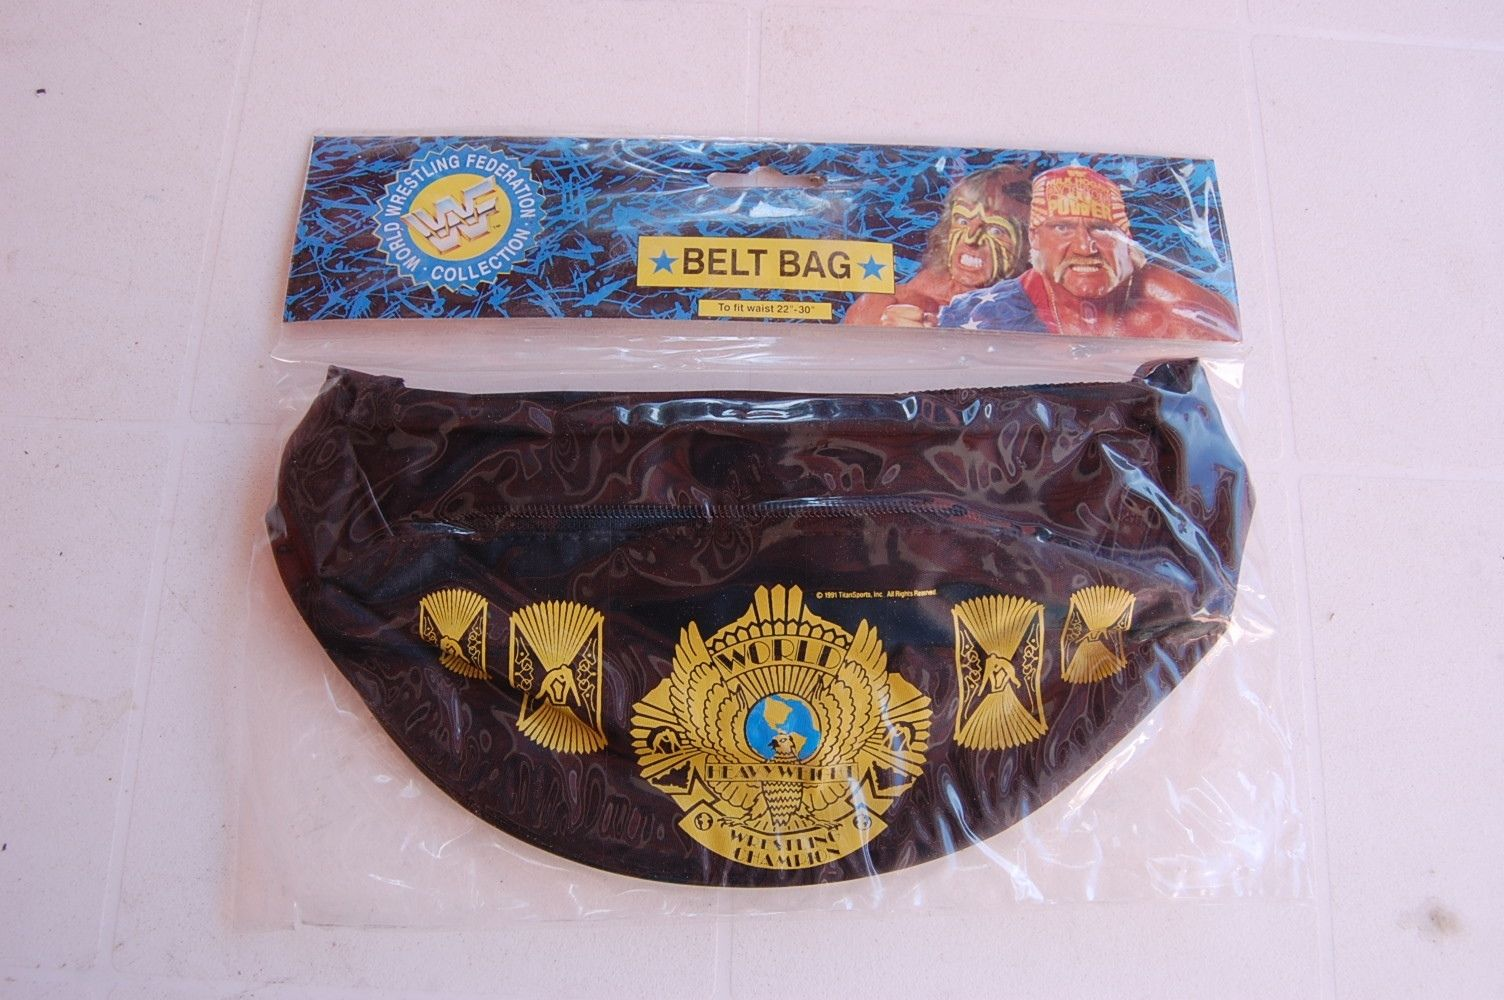 WWF Fanny Pack Hulk Hogan Ultimate Warrior World Championship Belt Bag 2